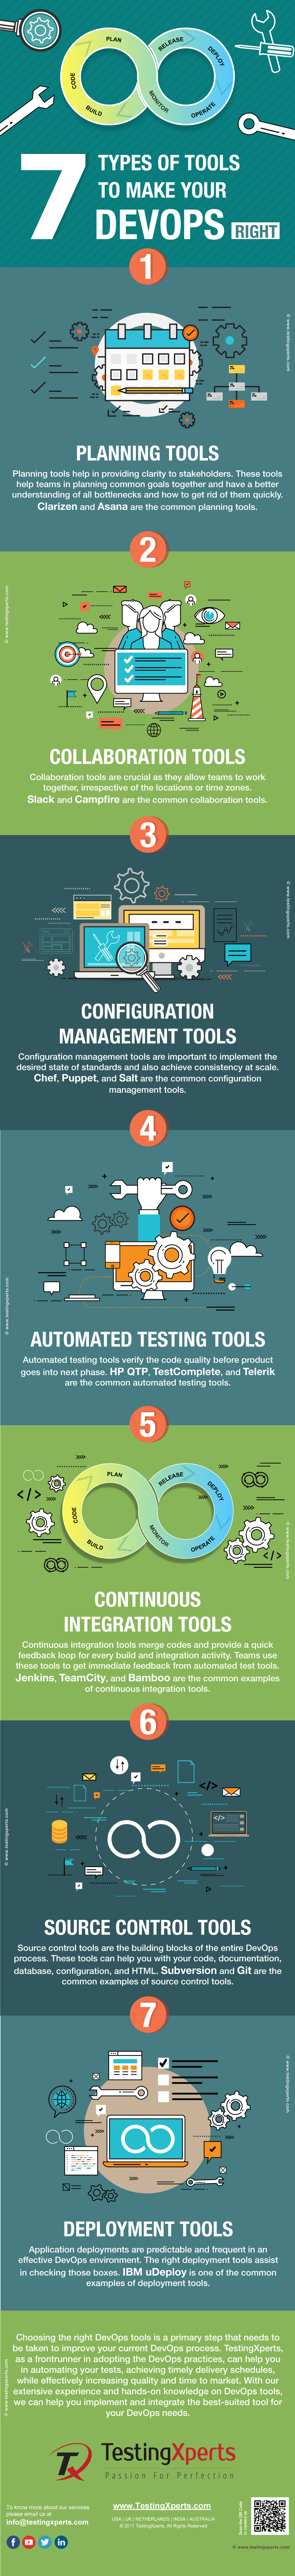 tools to make you devops infographic